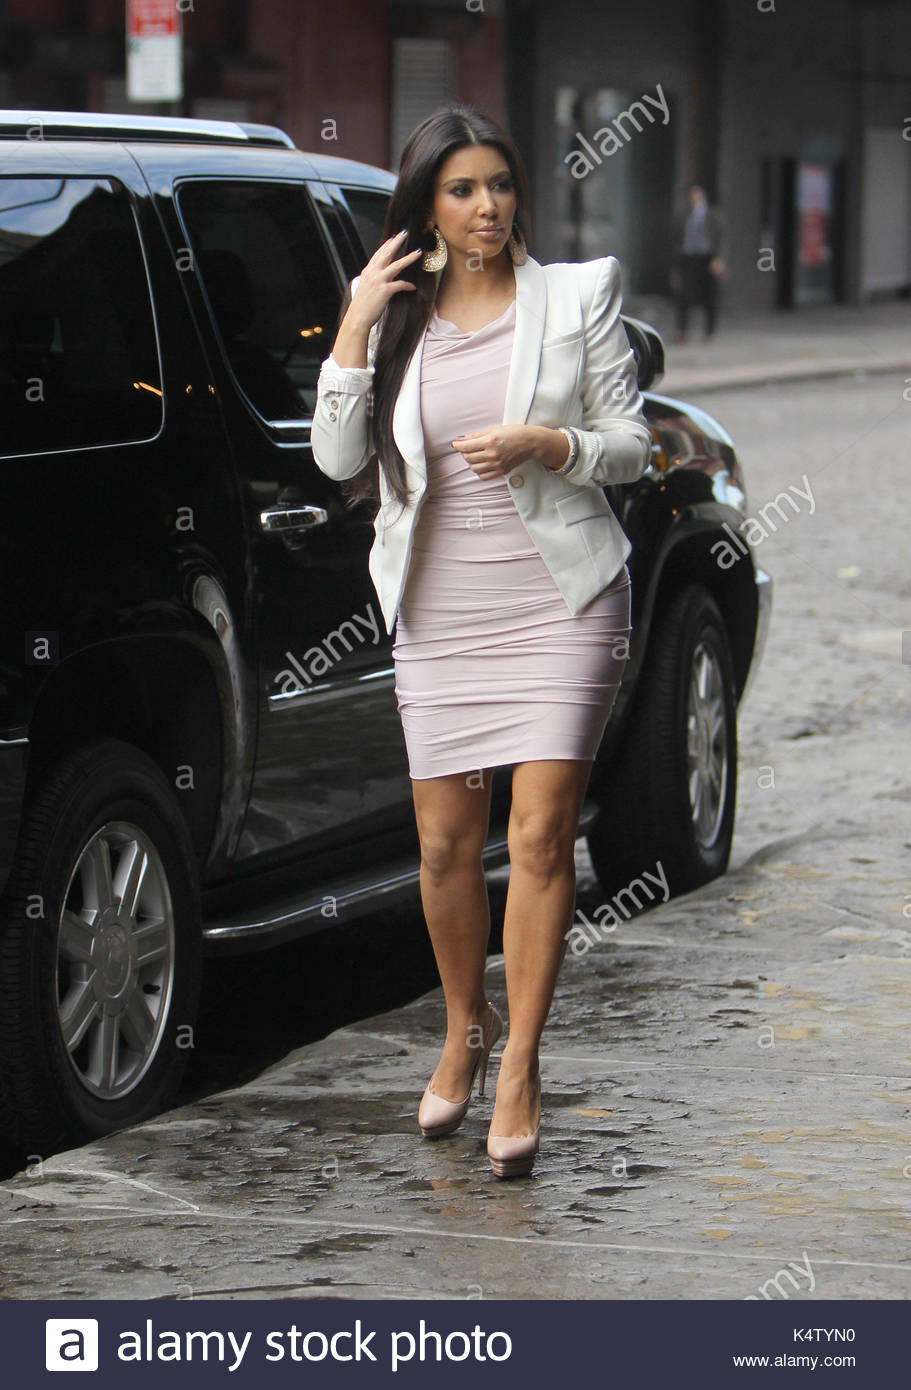 Emoticone Kim Kardashian kim kardashian. kim kardashian looks dazed in the meatpacking stock